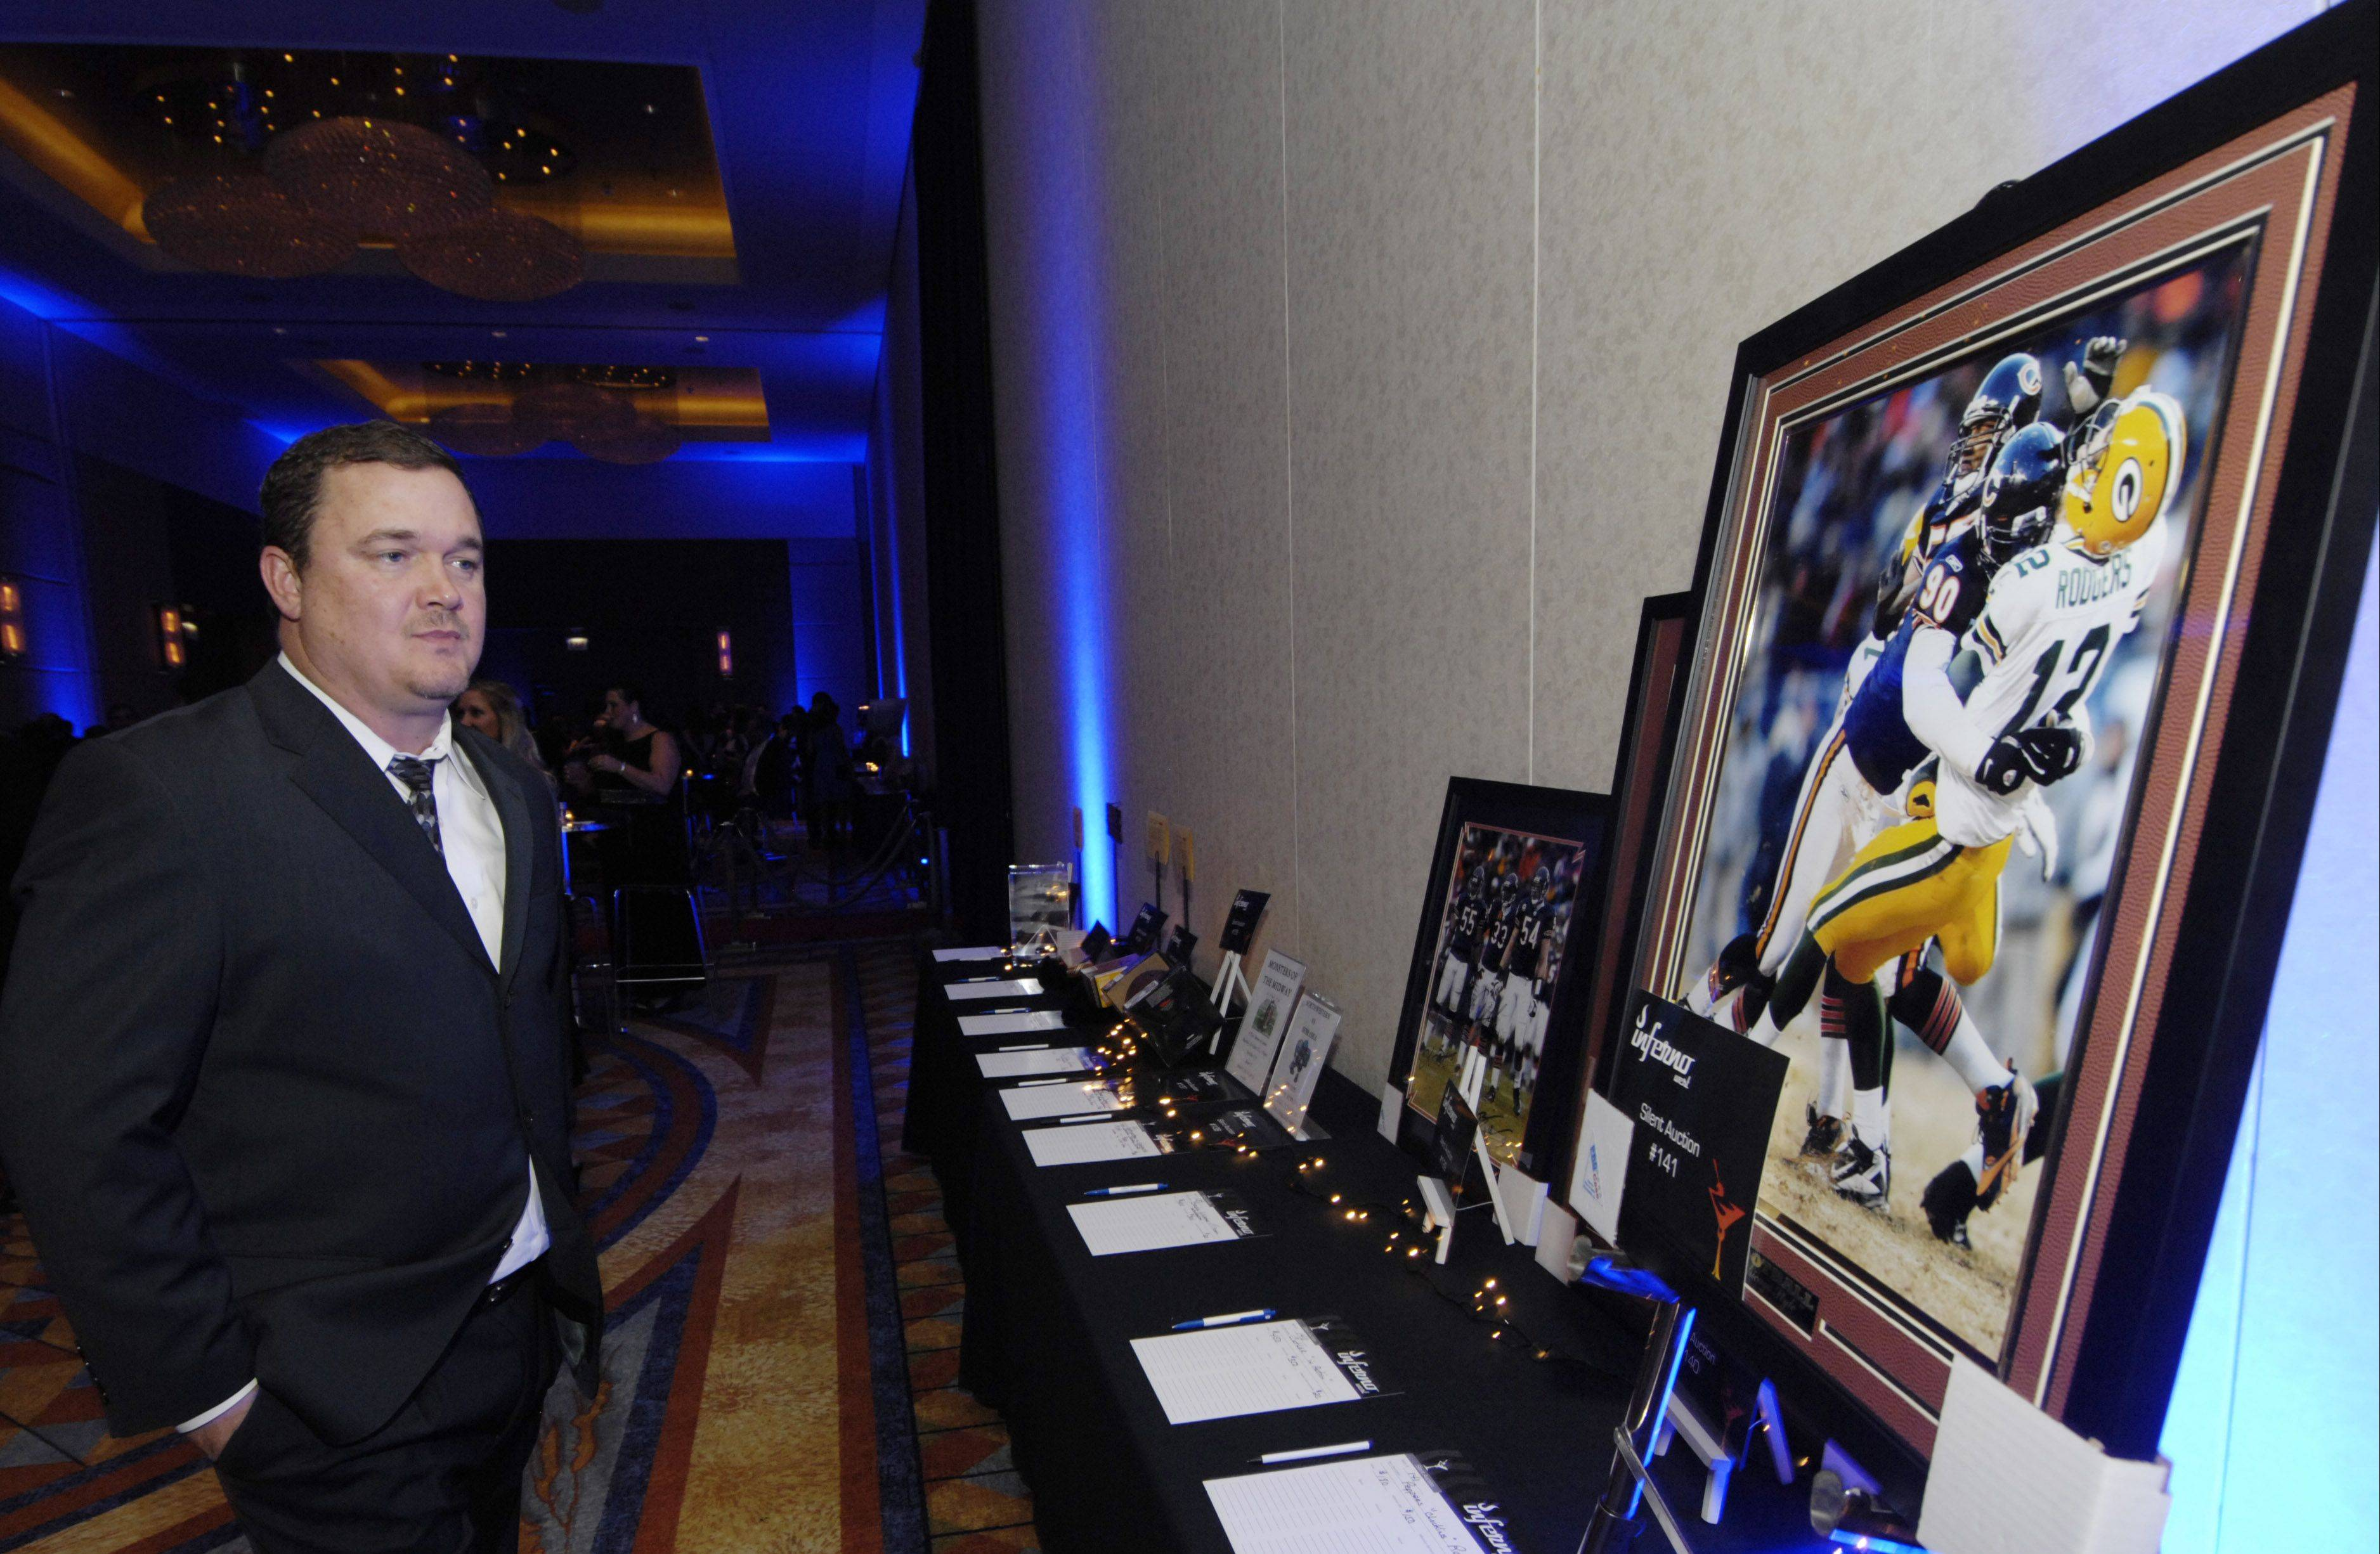 Cory Baldwin of Arlington Heights views silent auction items including Bears action photos during the Schaumburg Business Association gala and awards Saturday at the Renaissance Convention Center Hotel.